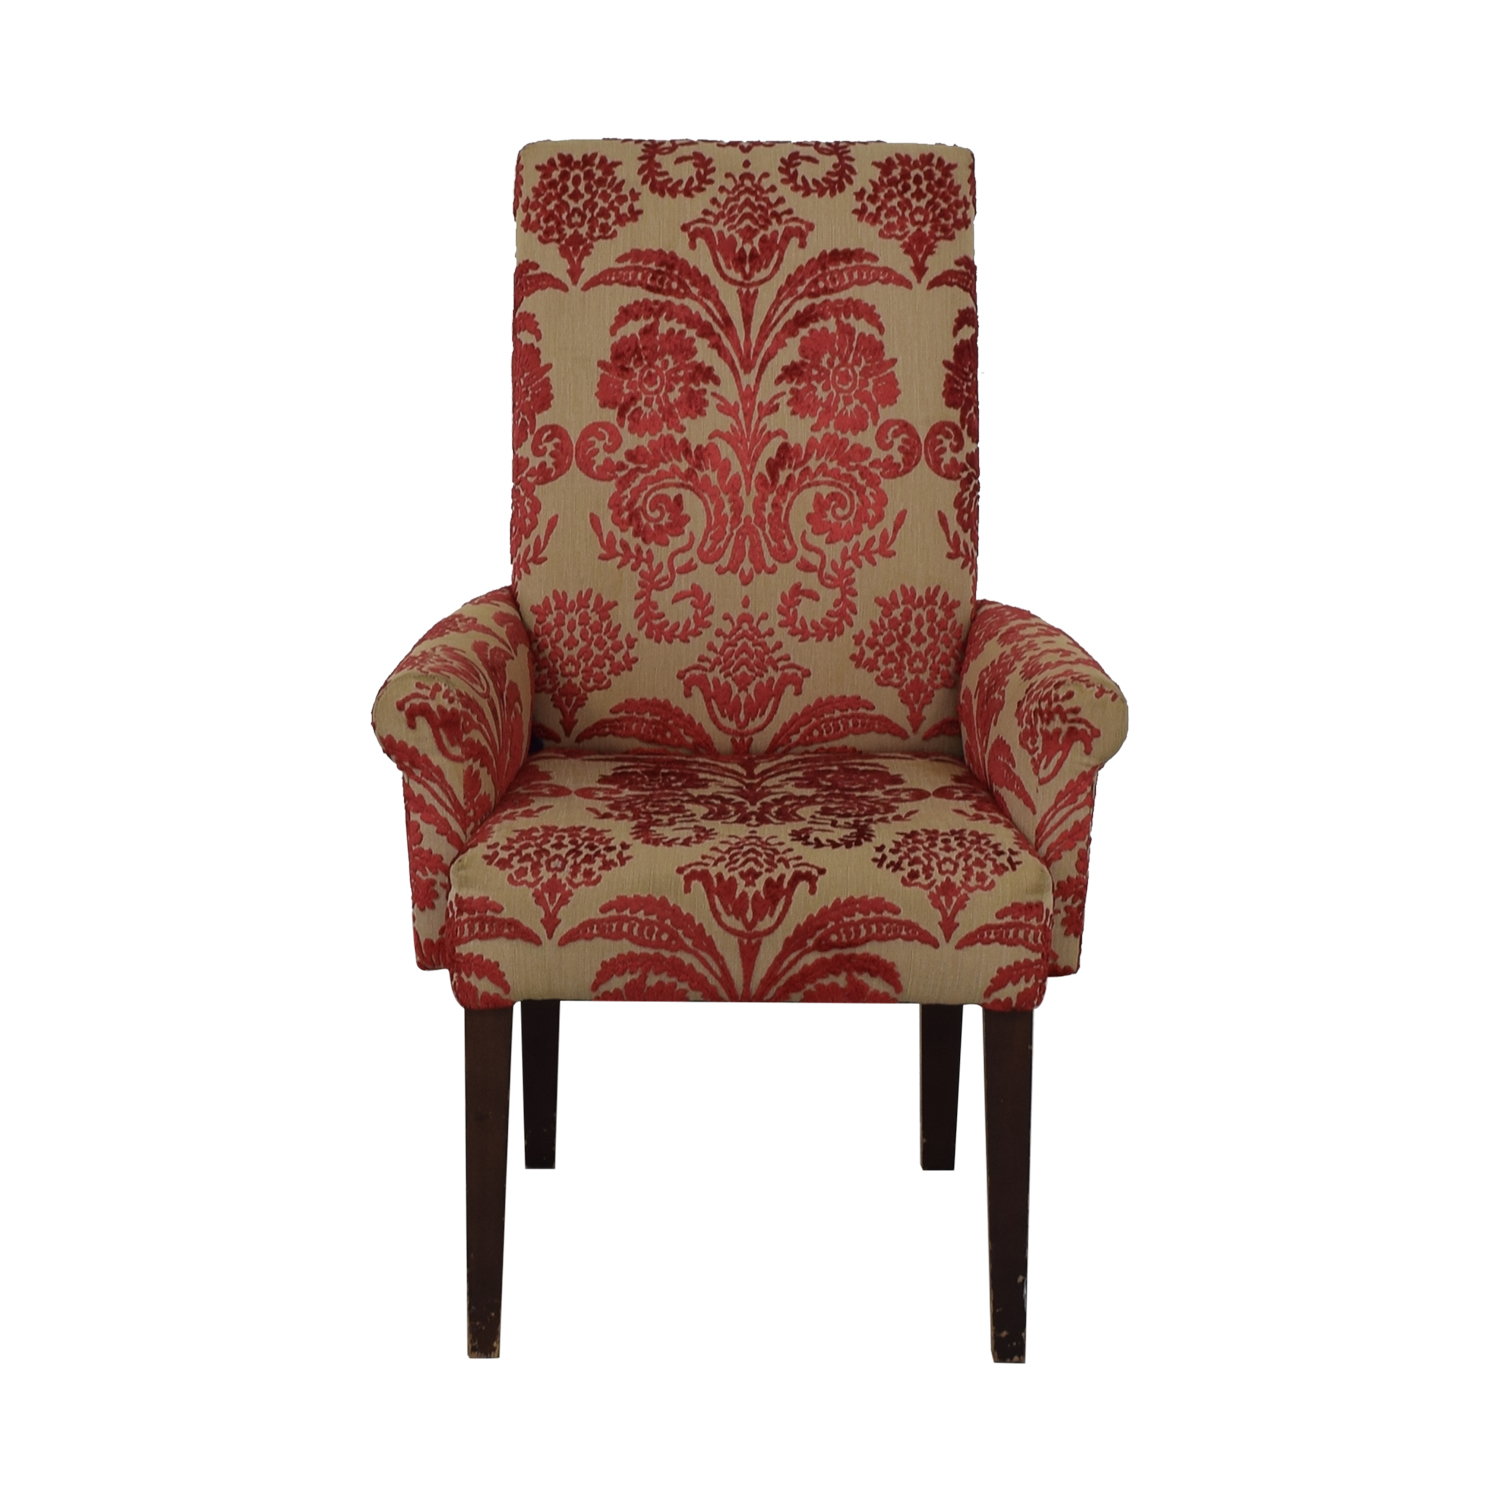 buy Red Upholstered Chair